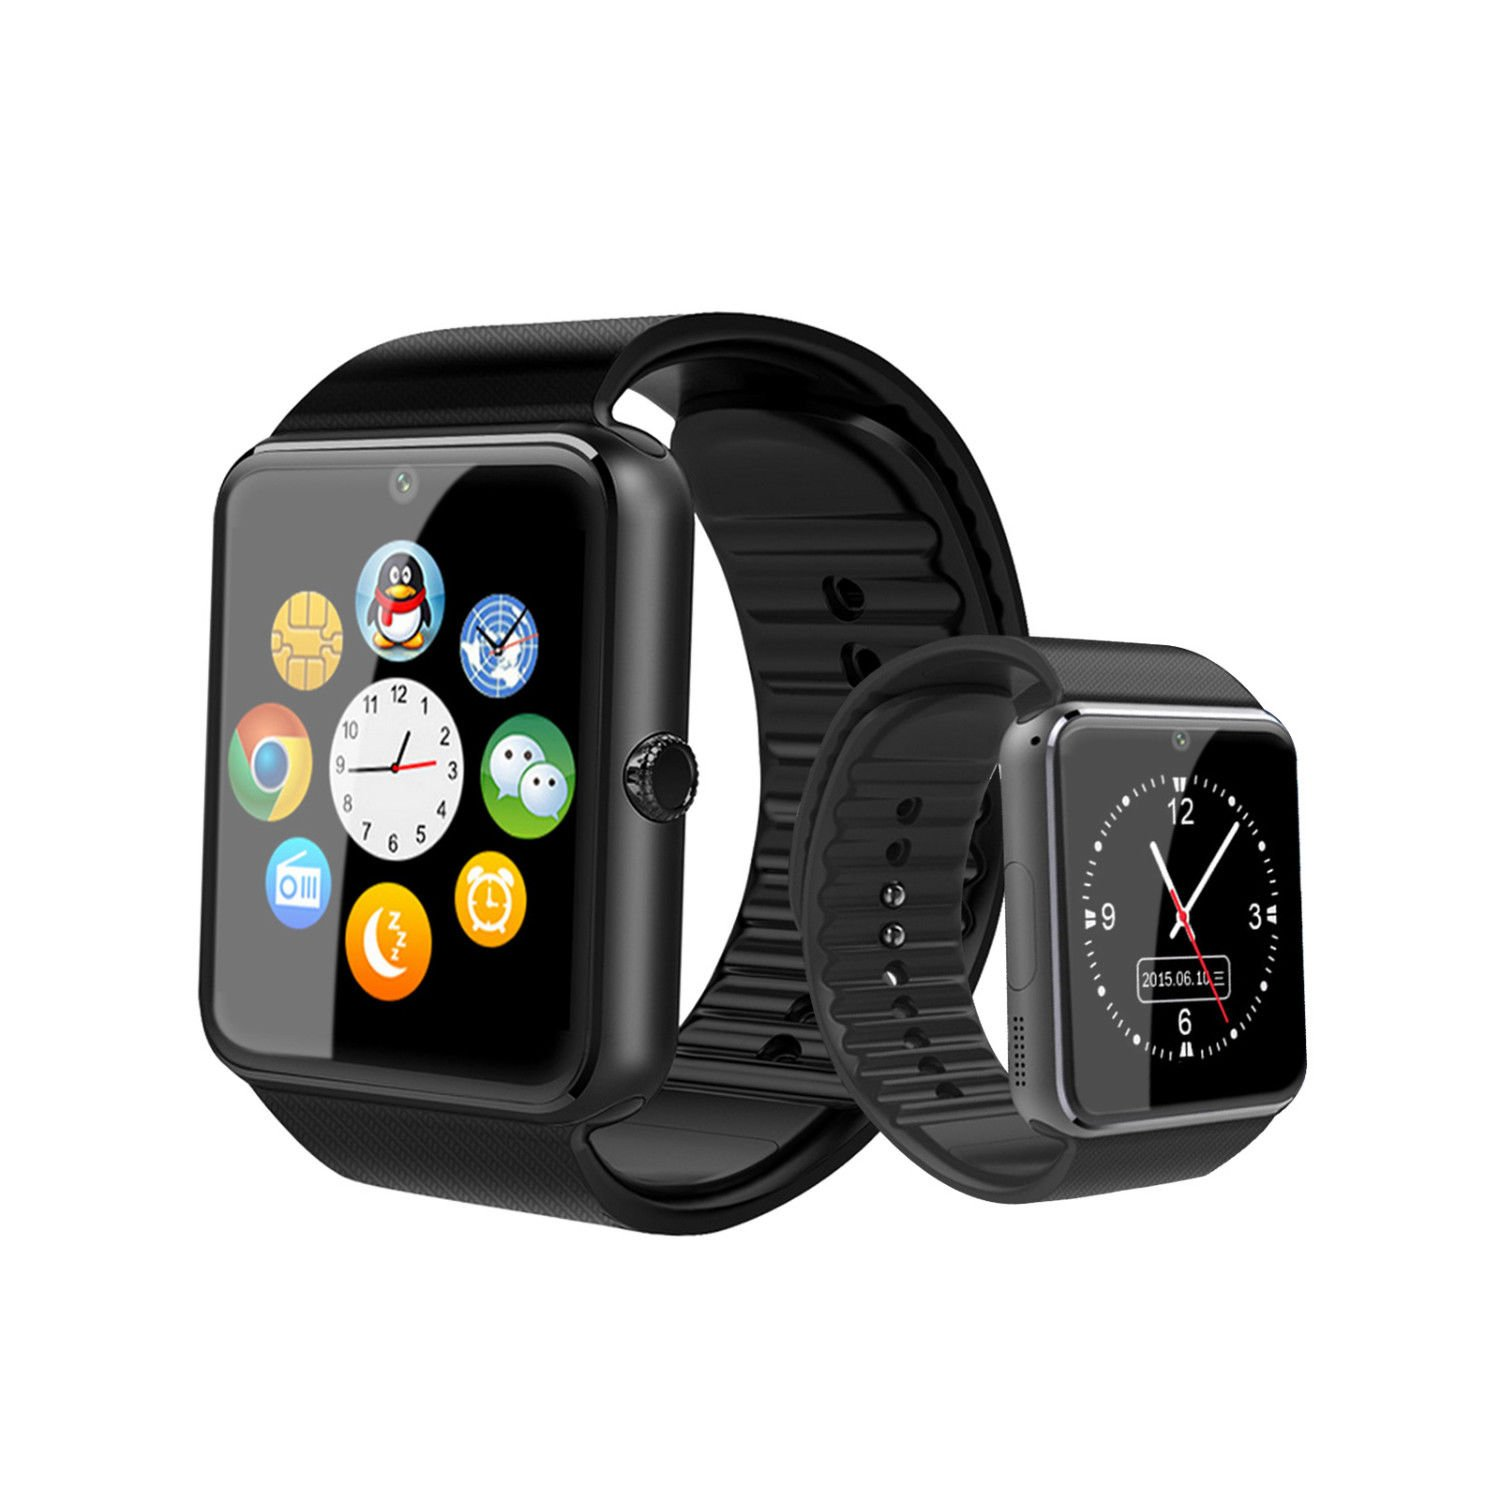 Pcjob 2018 Reloj Bluetooth Smart Watch gt08 para Samsung ...